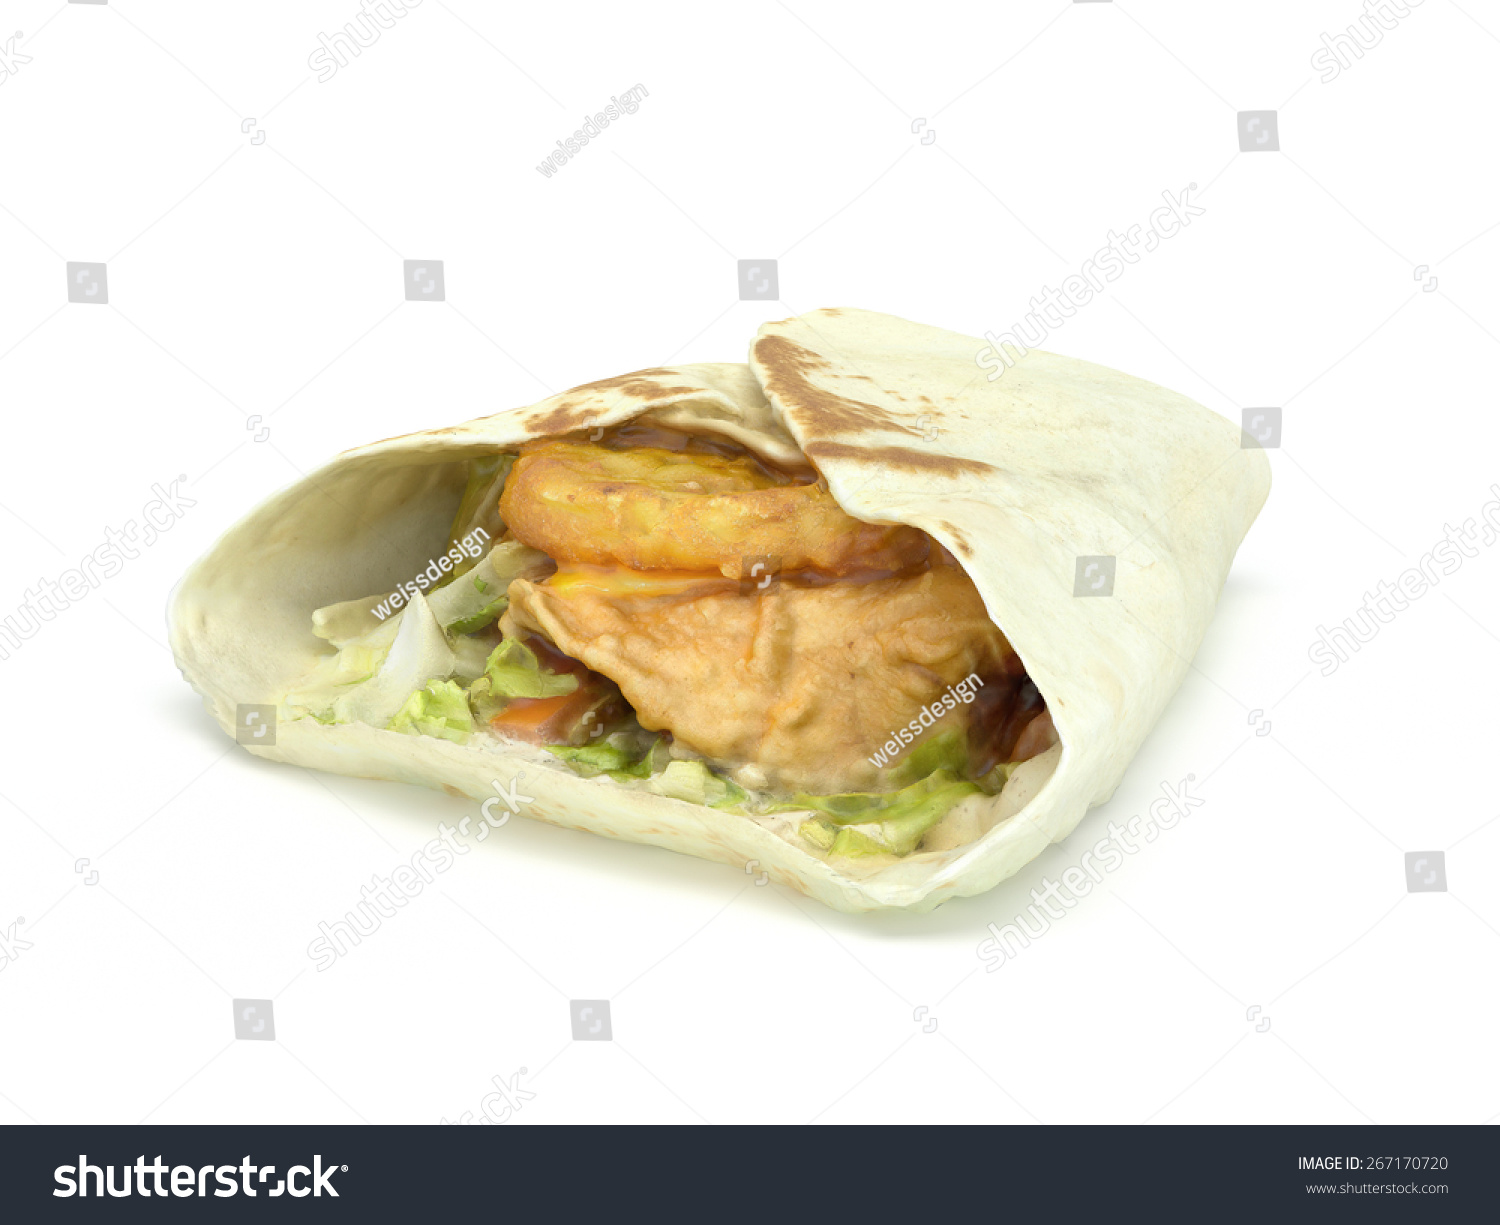 how to make a wrap with pita bread